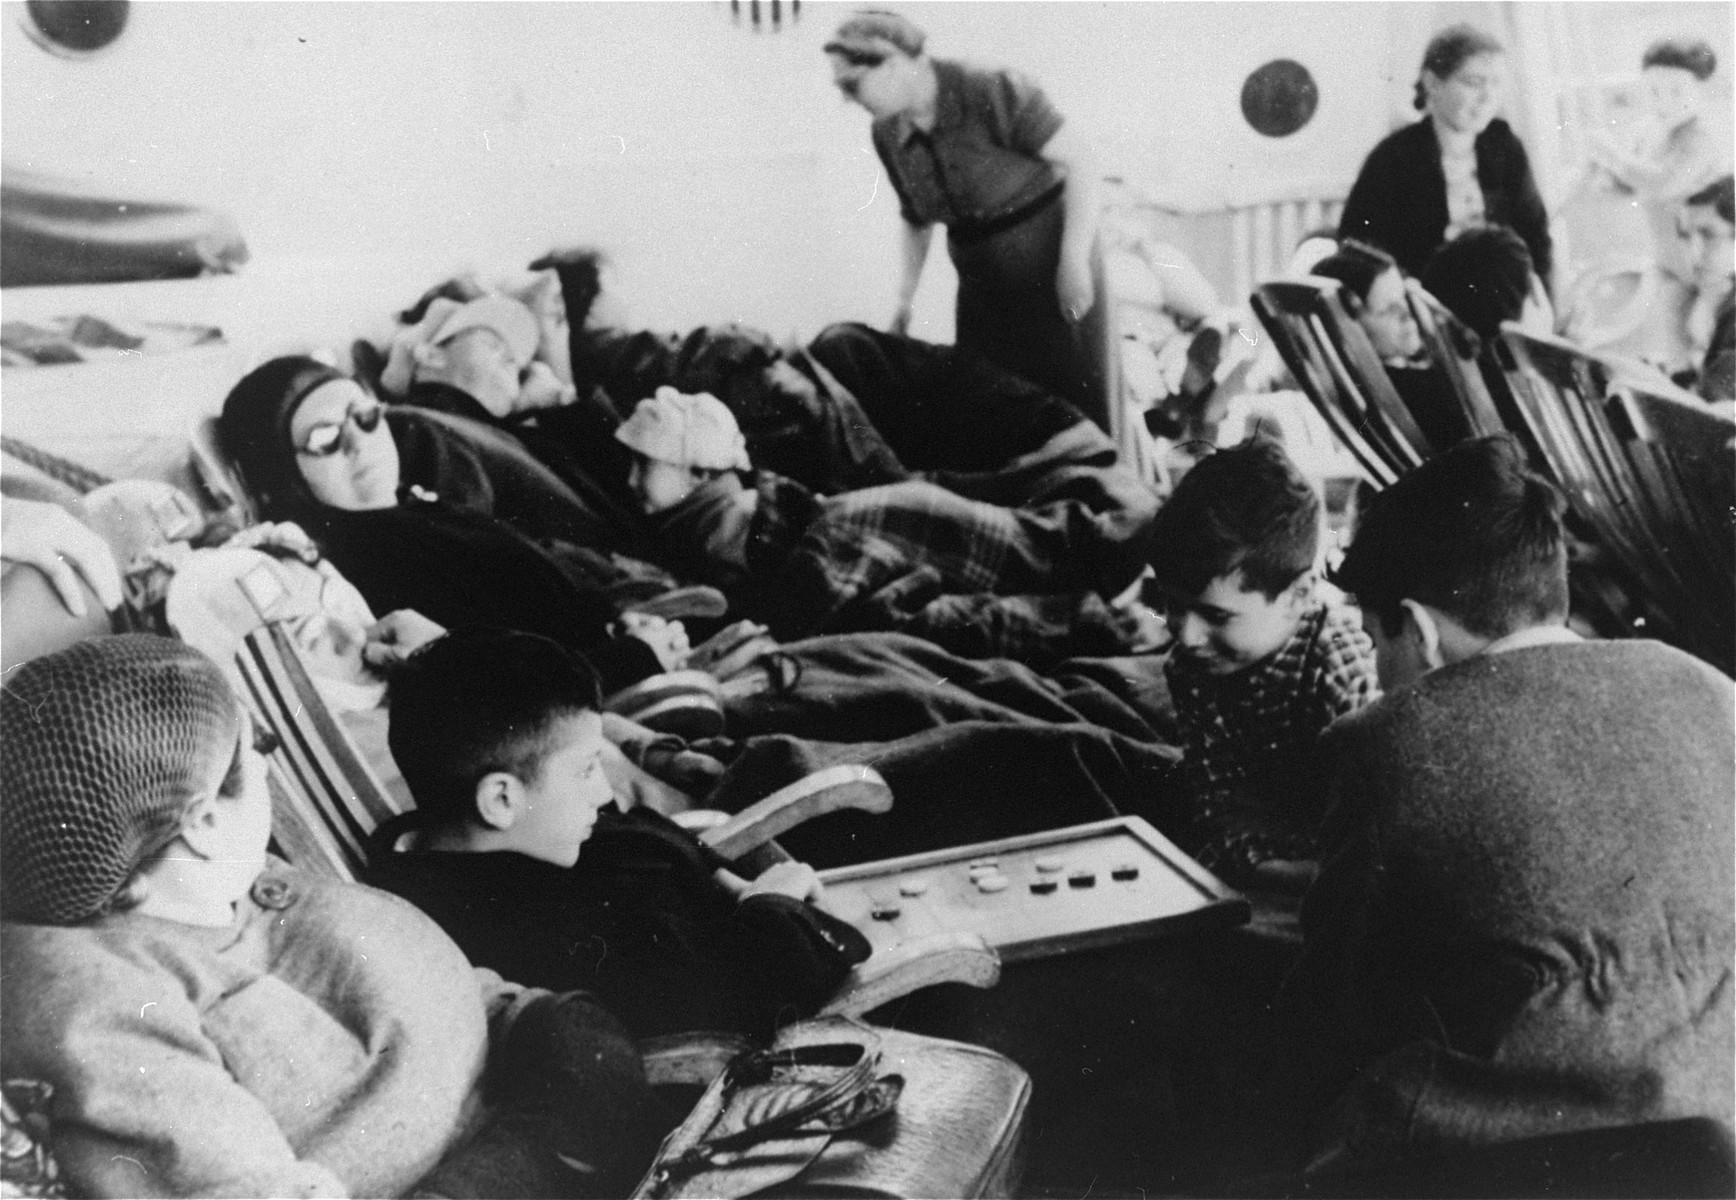 German Jewish refugees relax on the deck of the SS Iberia during the voyage from Lisbon to Havana.    Among those pictured are Manfred and Klaus Gallewski.